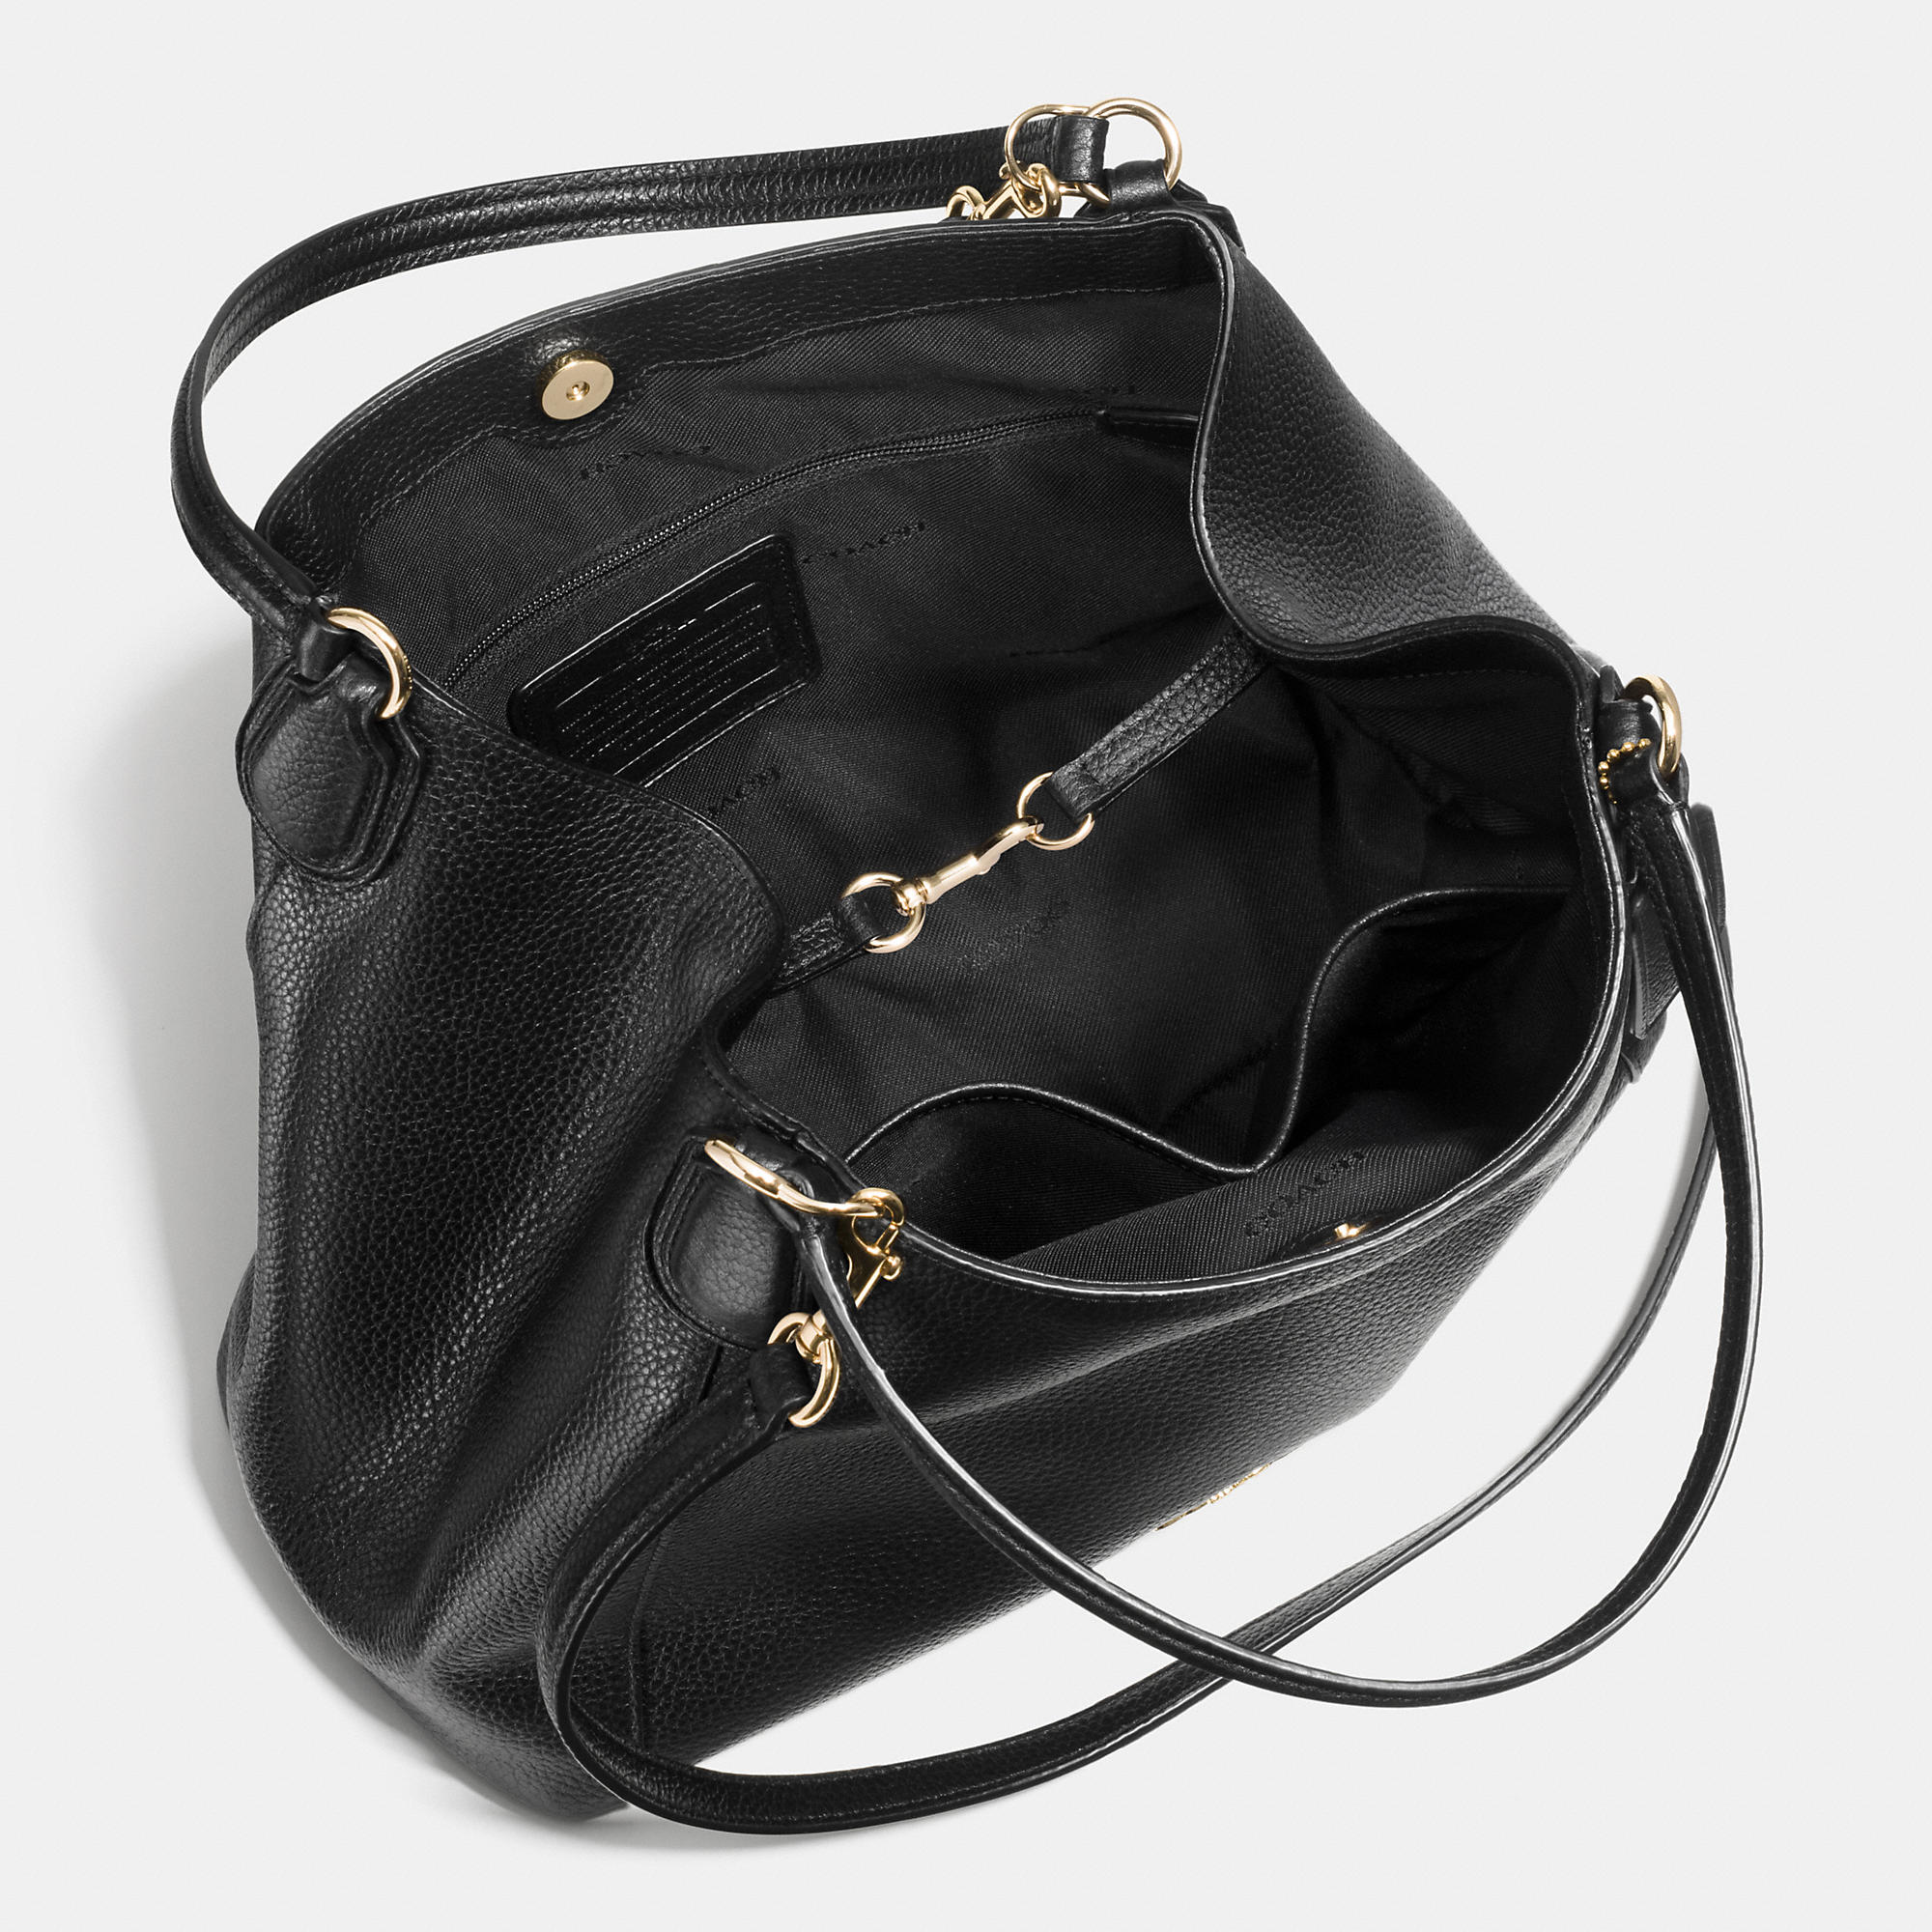 outlet sale online retailer on sale online Edie Shoulder Bag 28 in Pebble Leather